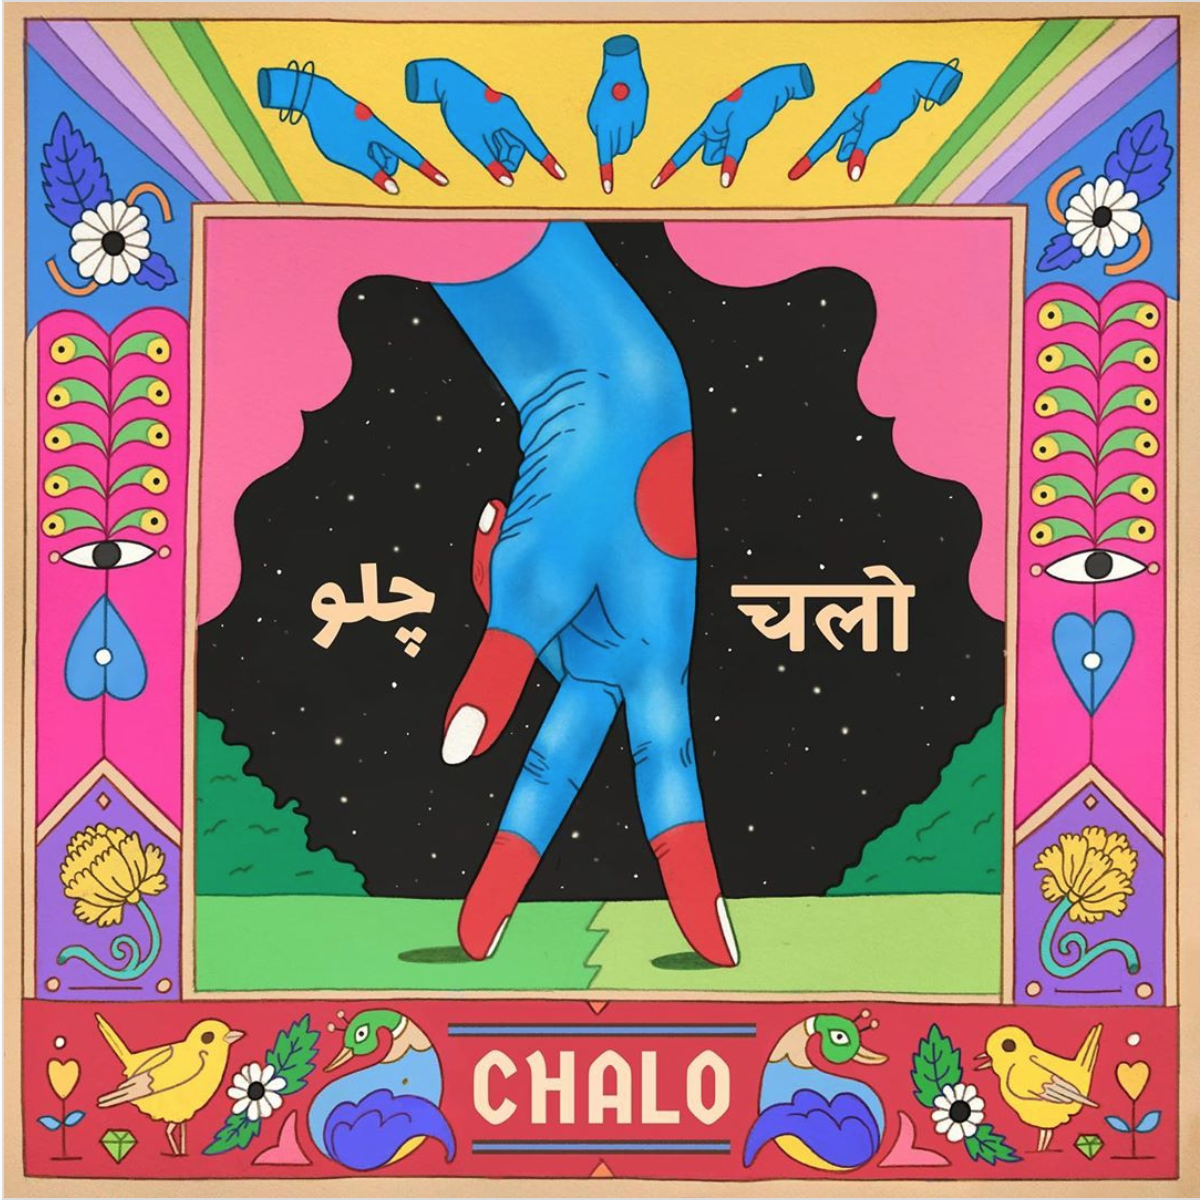 Chalo Charity Compilation Cover compiled by Jitwam